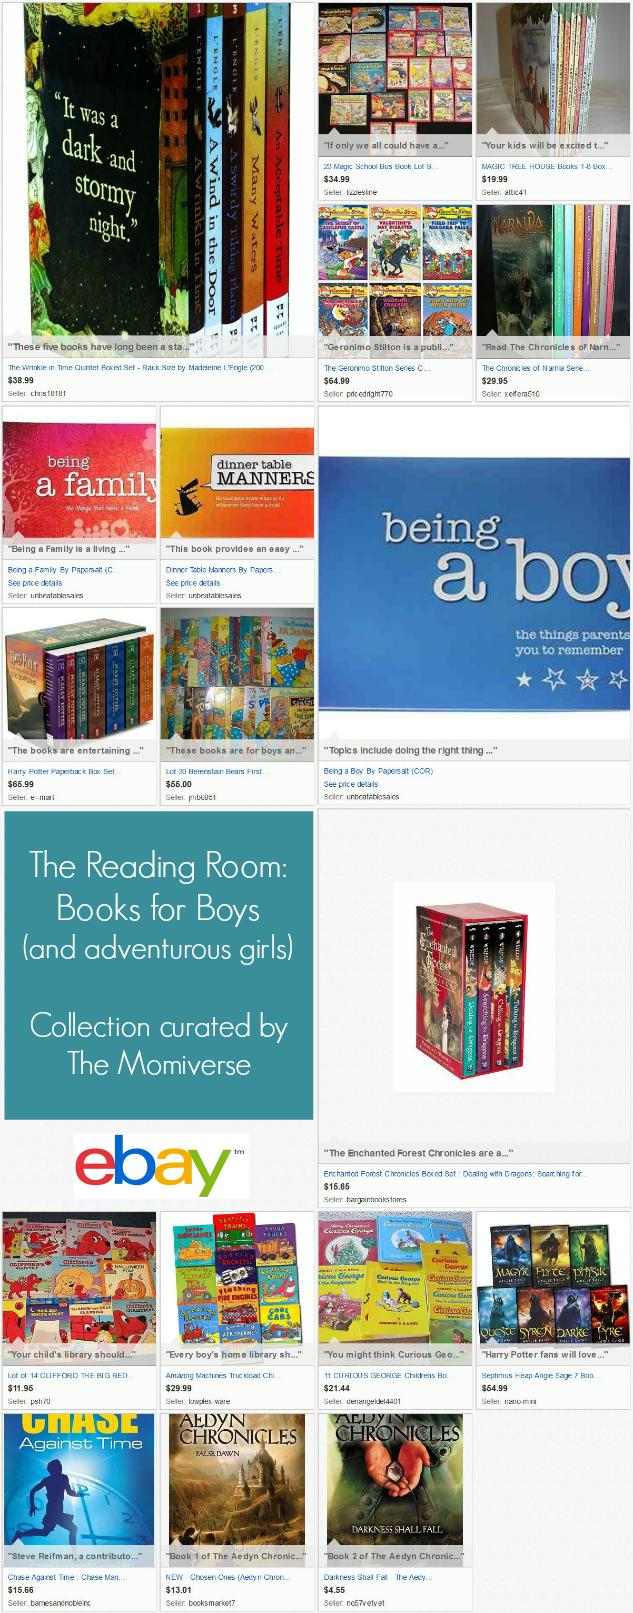 The Reading Room- Books for Boys | eBay Collection curated by The Momiverse | Gift Guide